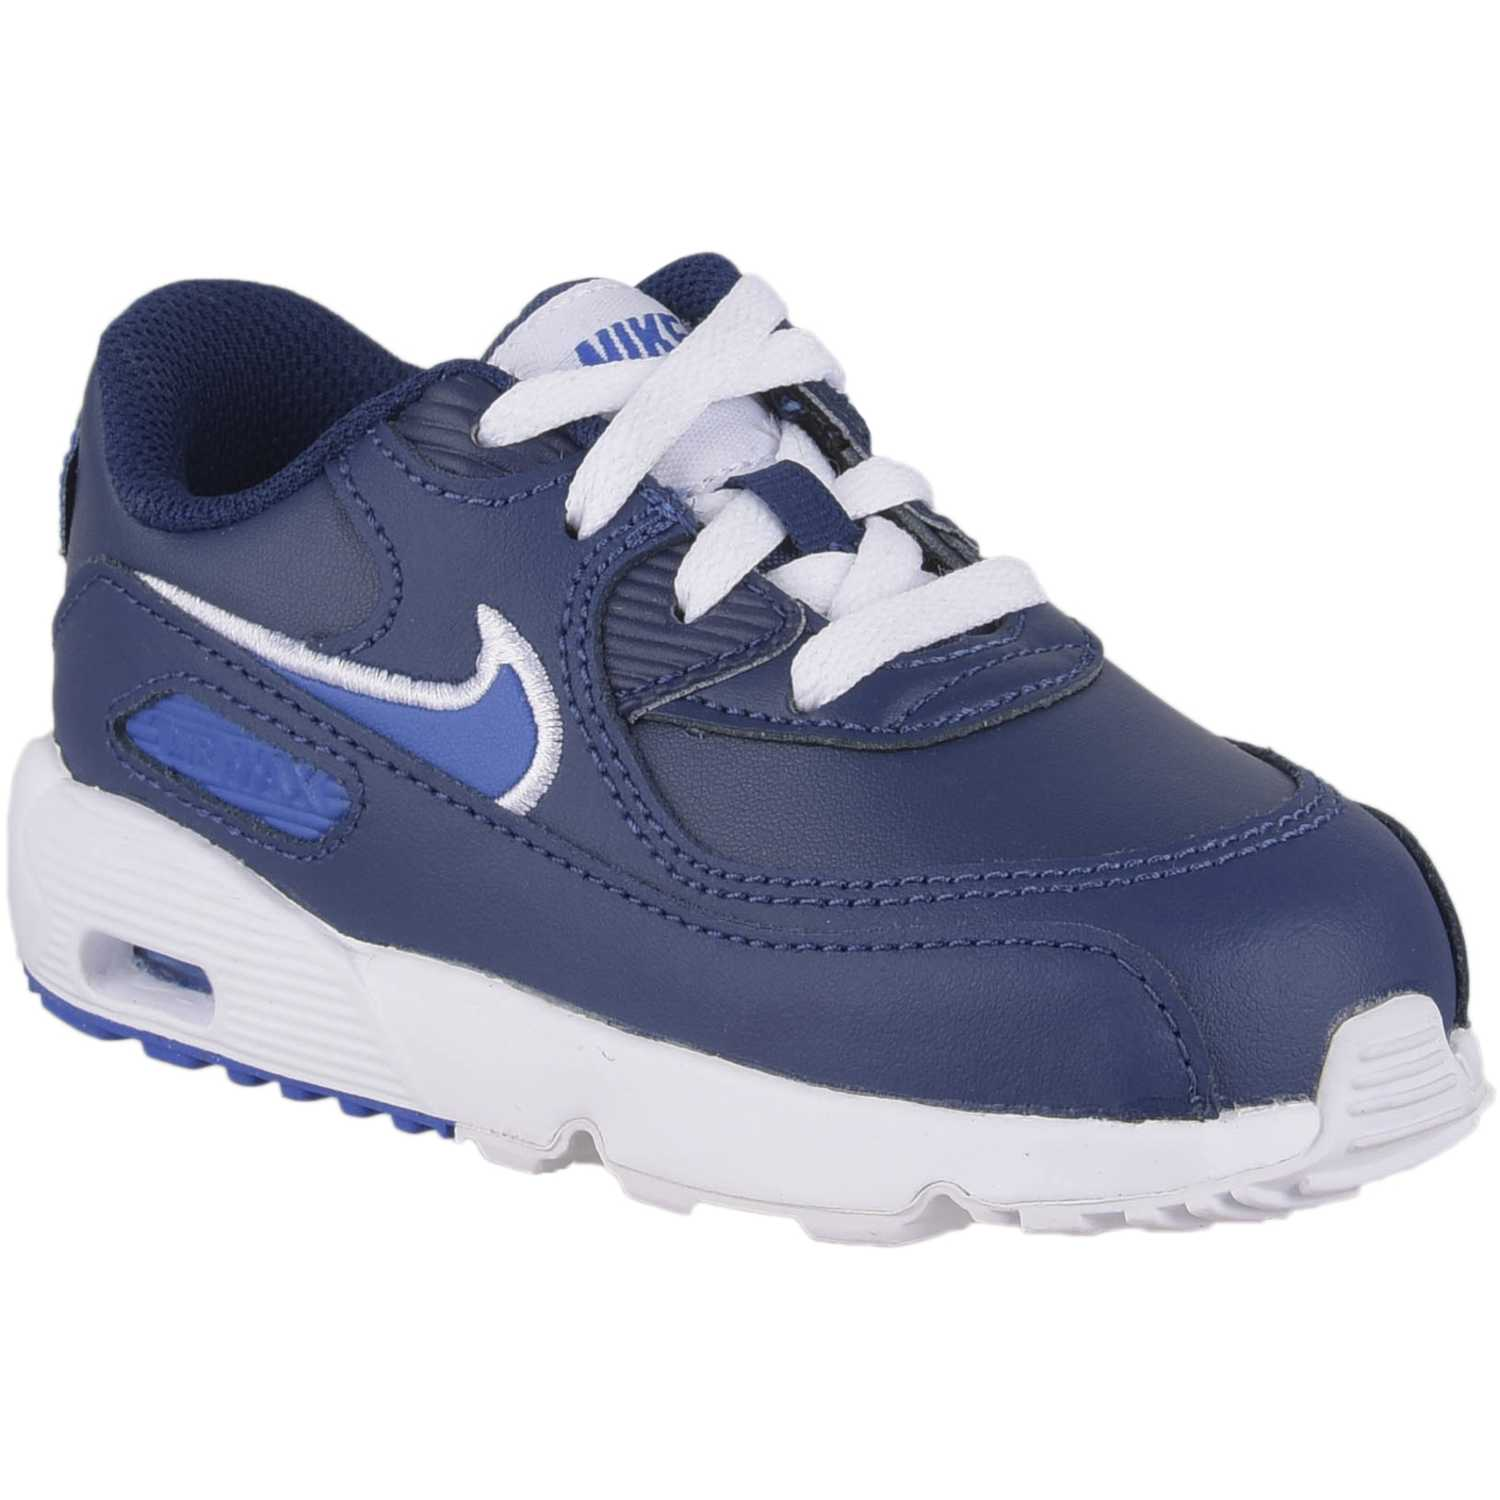 Zapatilla de Niño Nike Navy / Blanco air max 90 ltr bt